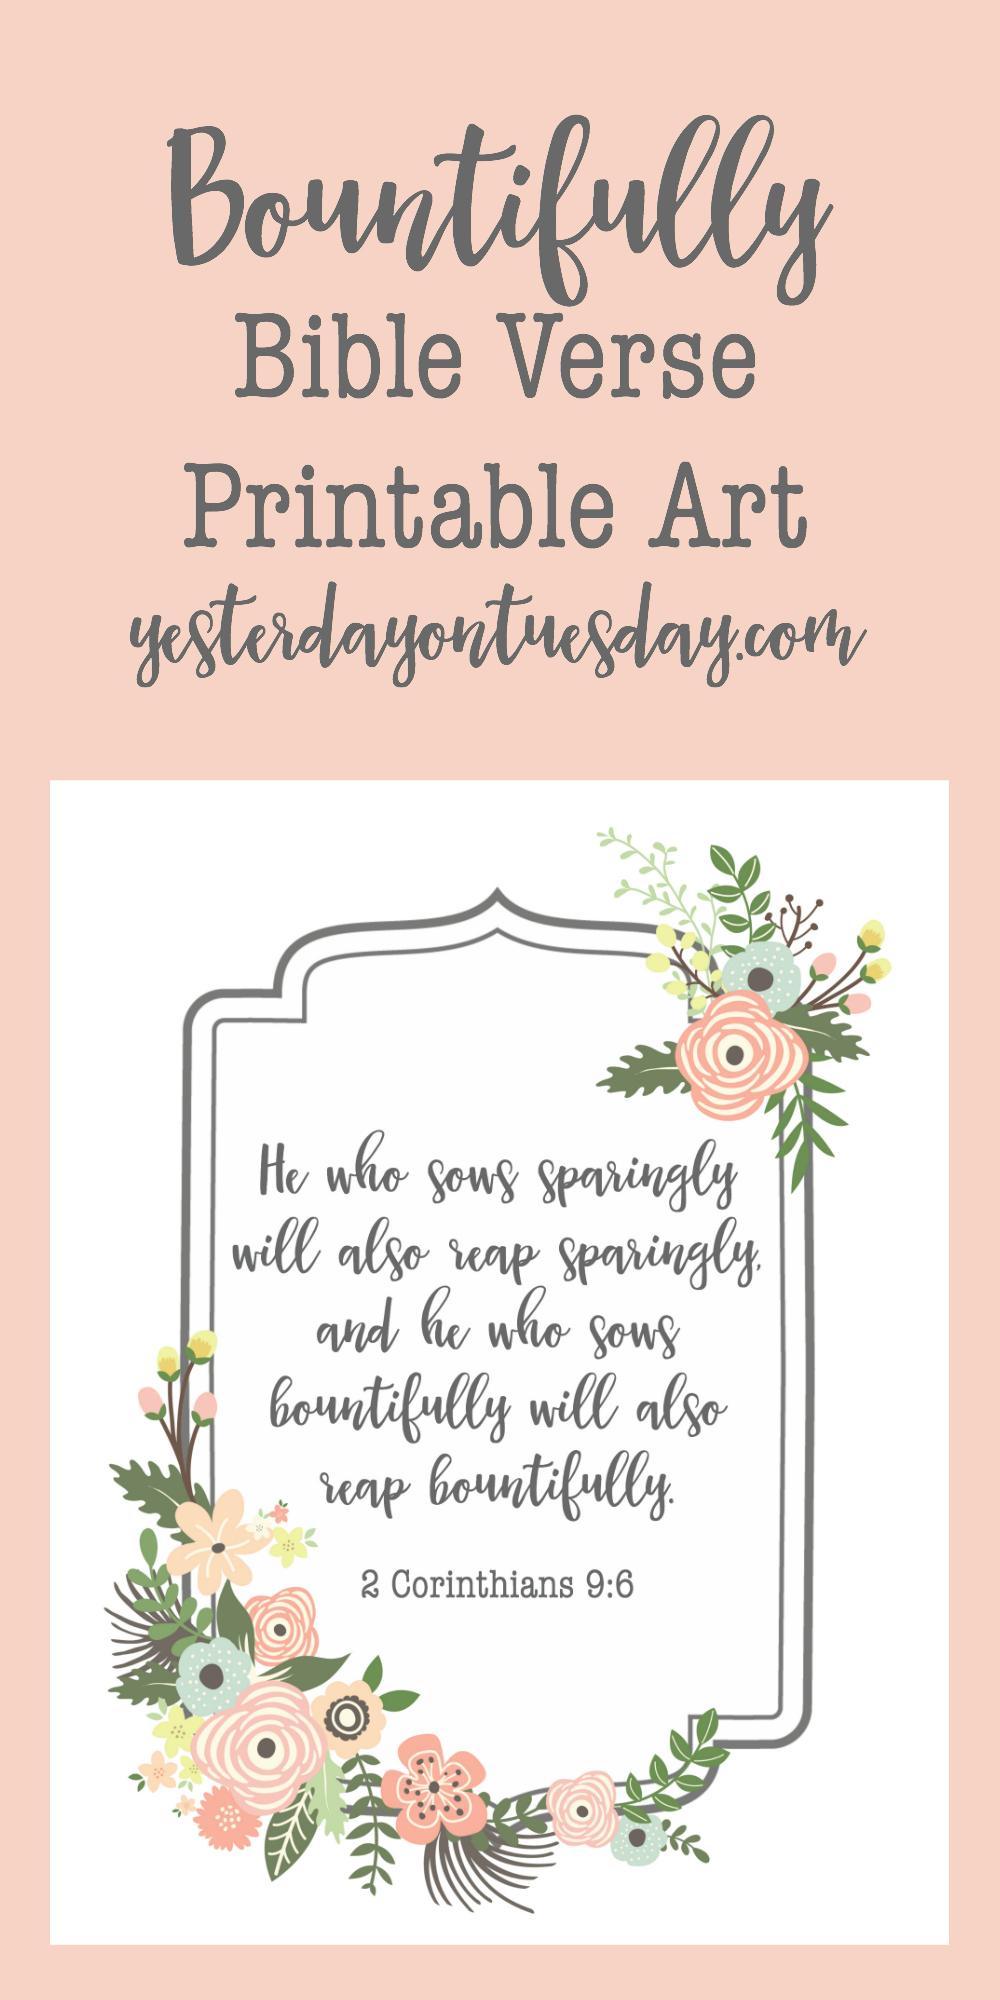 Bountifully Bible Verse Printable Art: Lovely art featuring 2 Corinthians 9:6 for your home. Just print and frame or display on a clipboard.